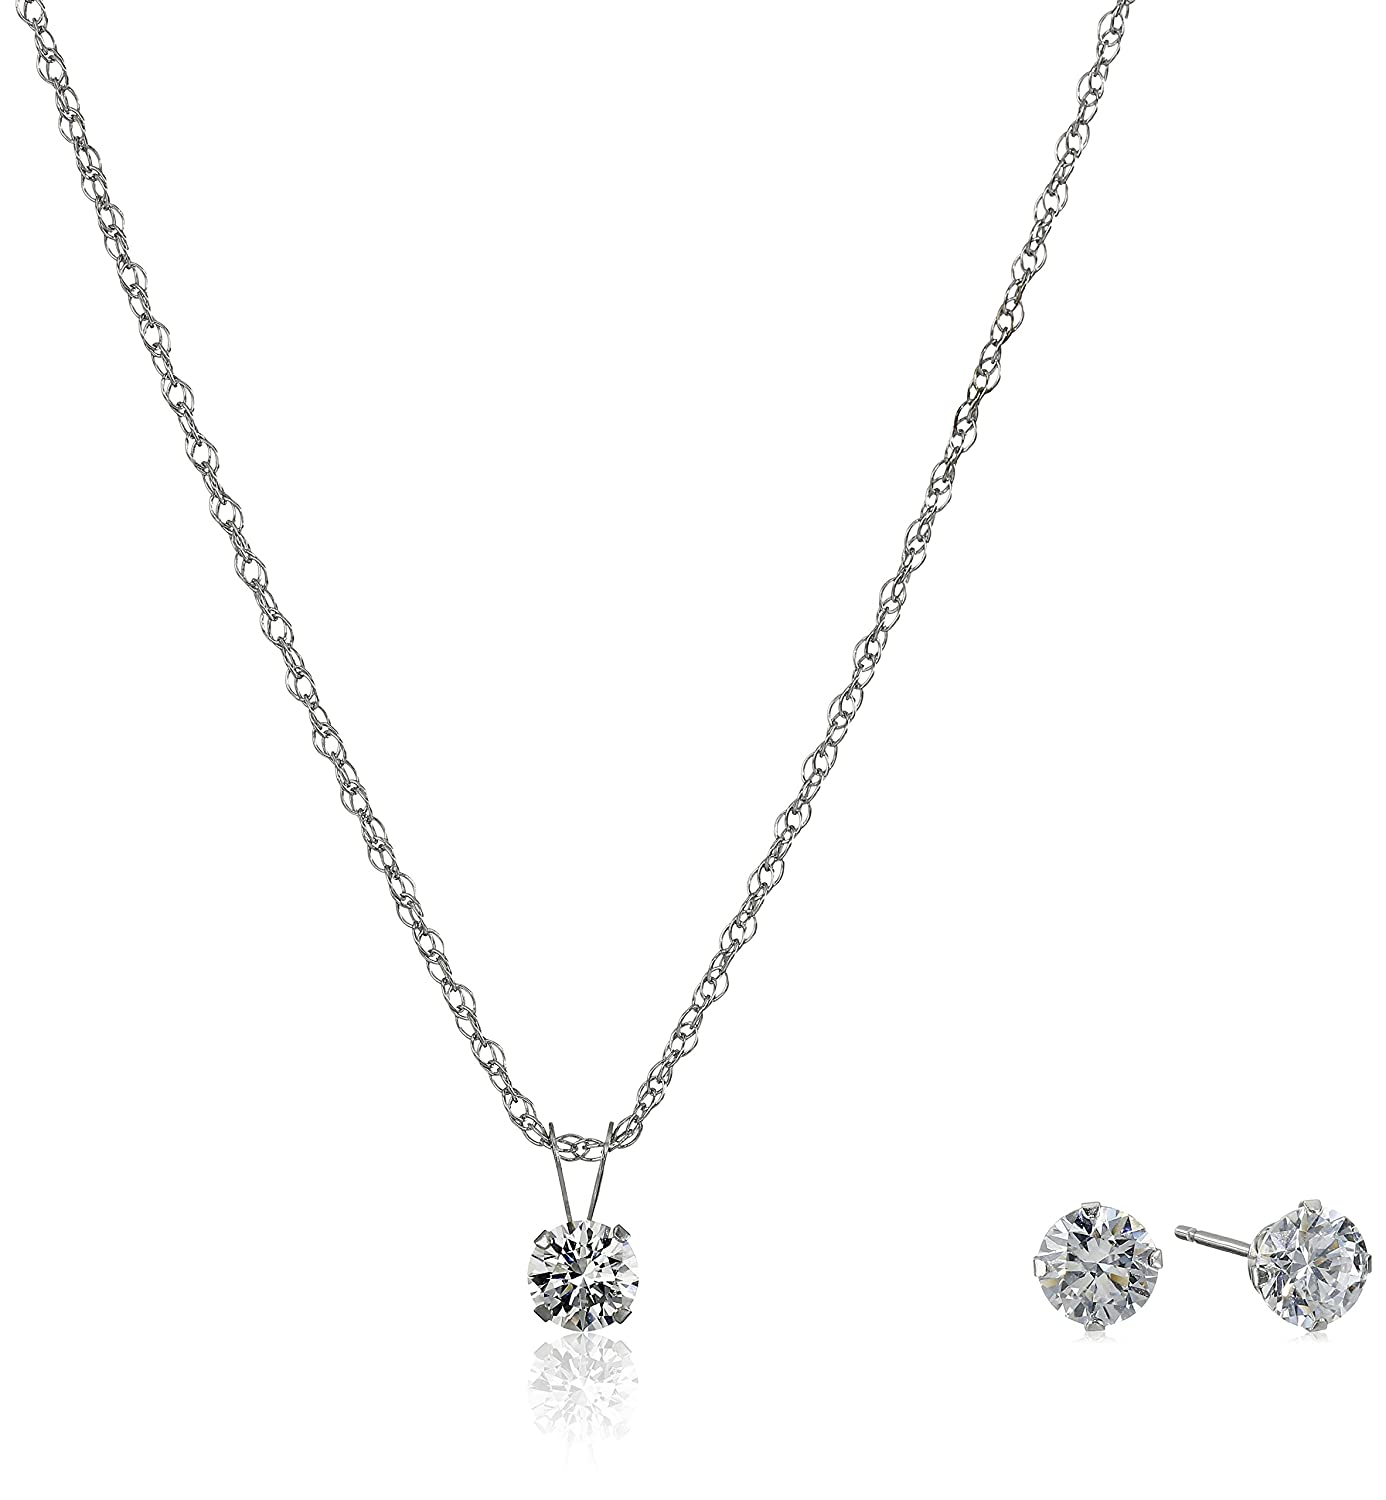 b necklace white gold bvlgari diamond